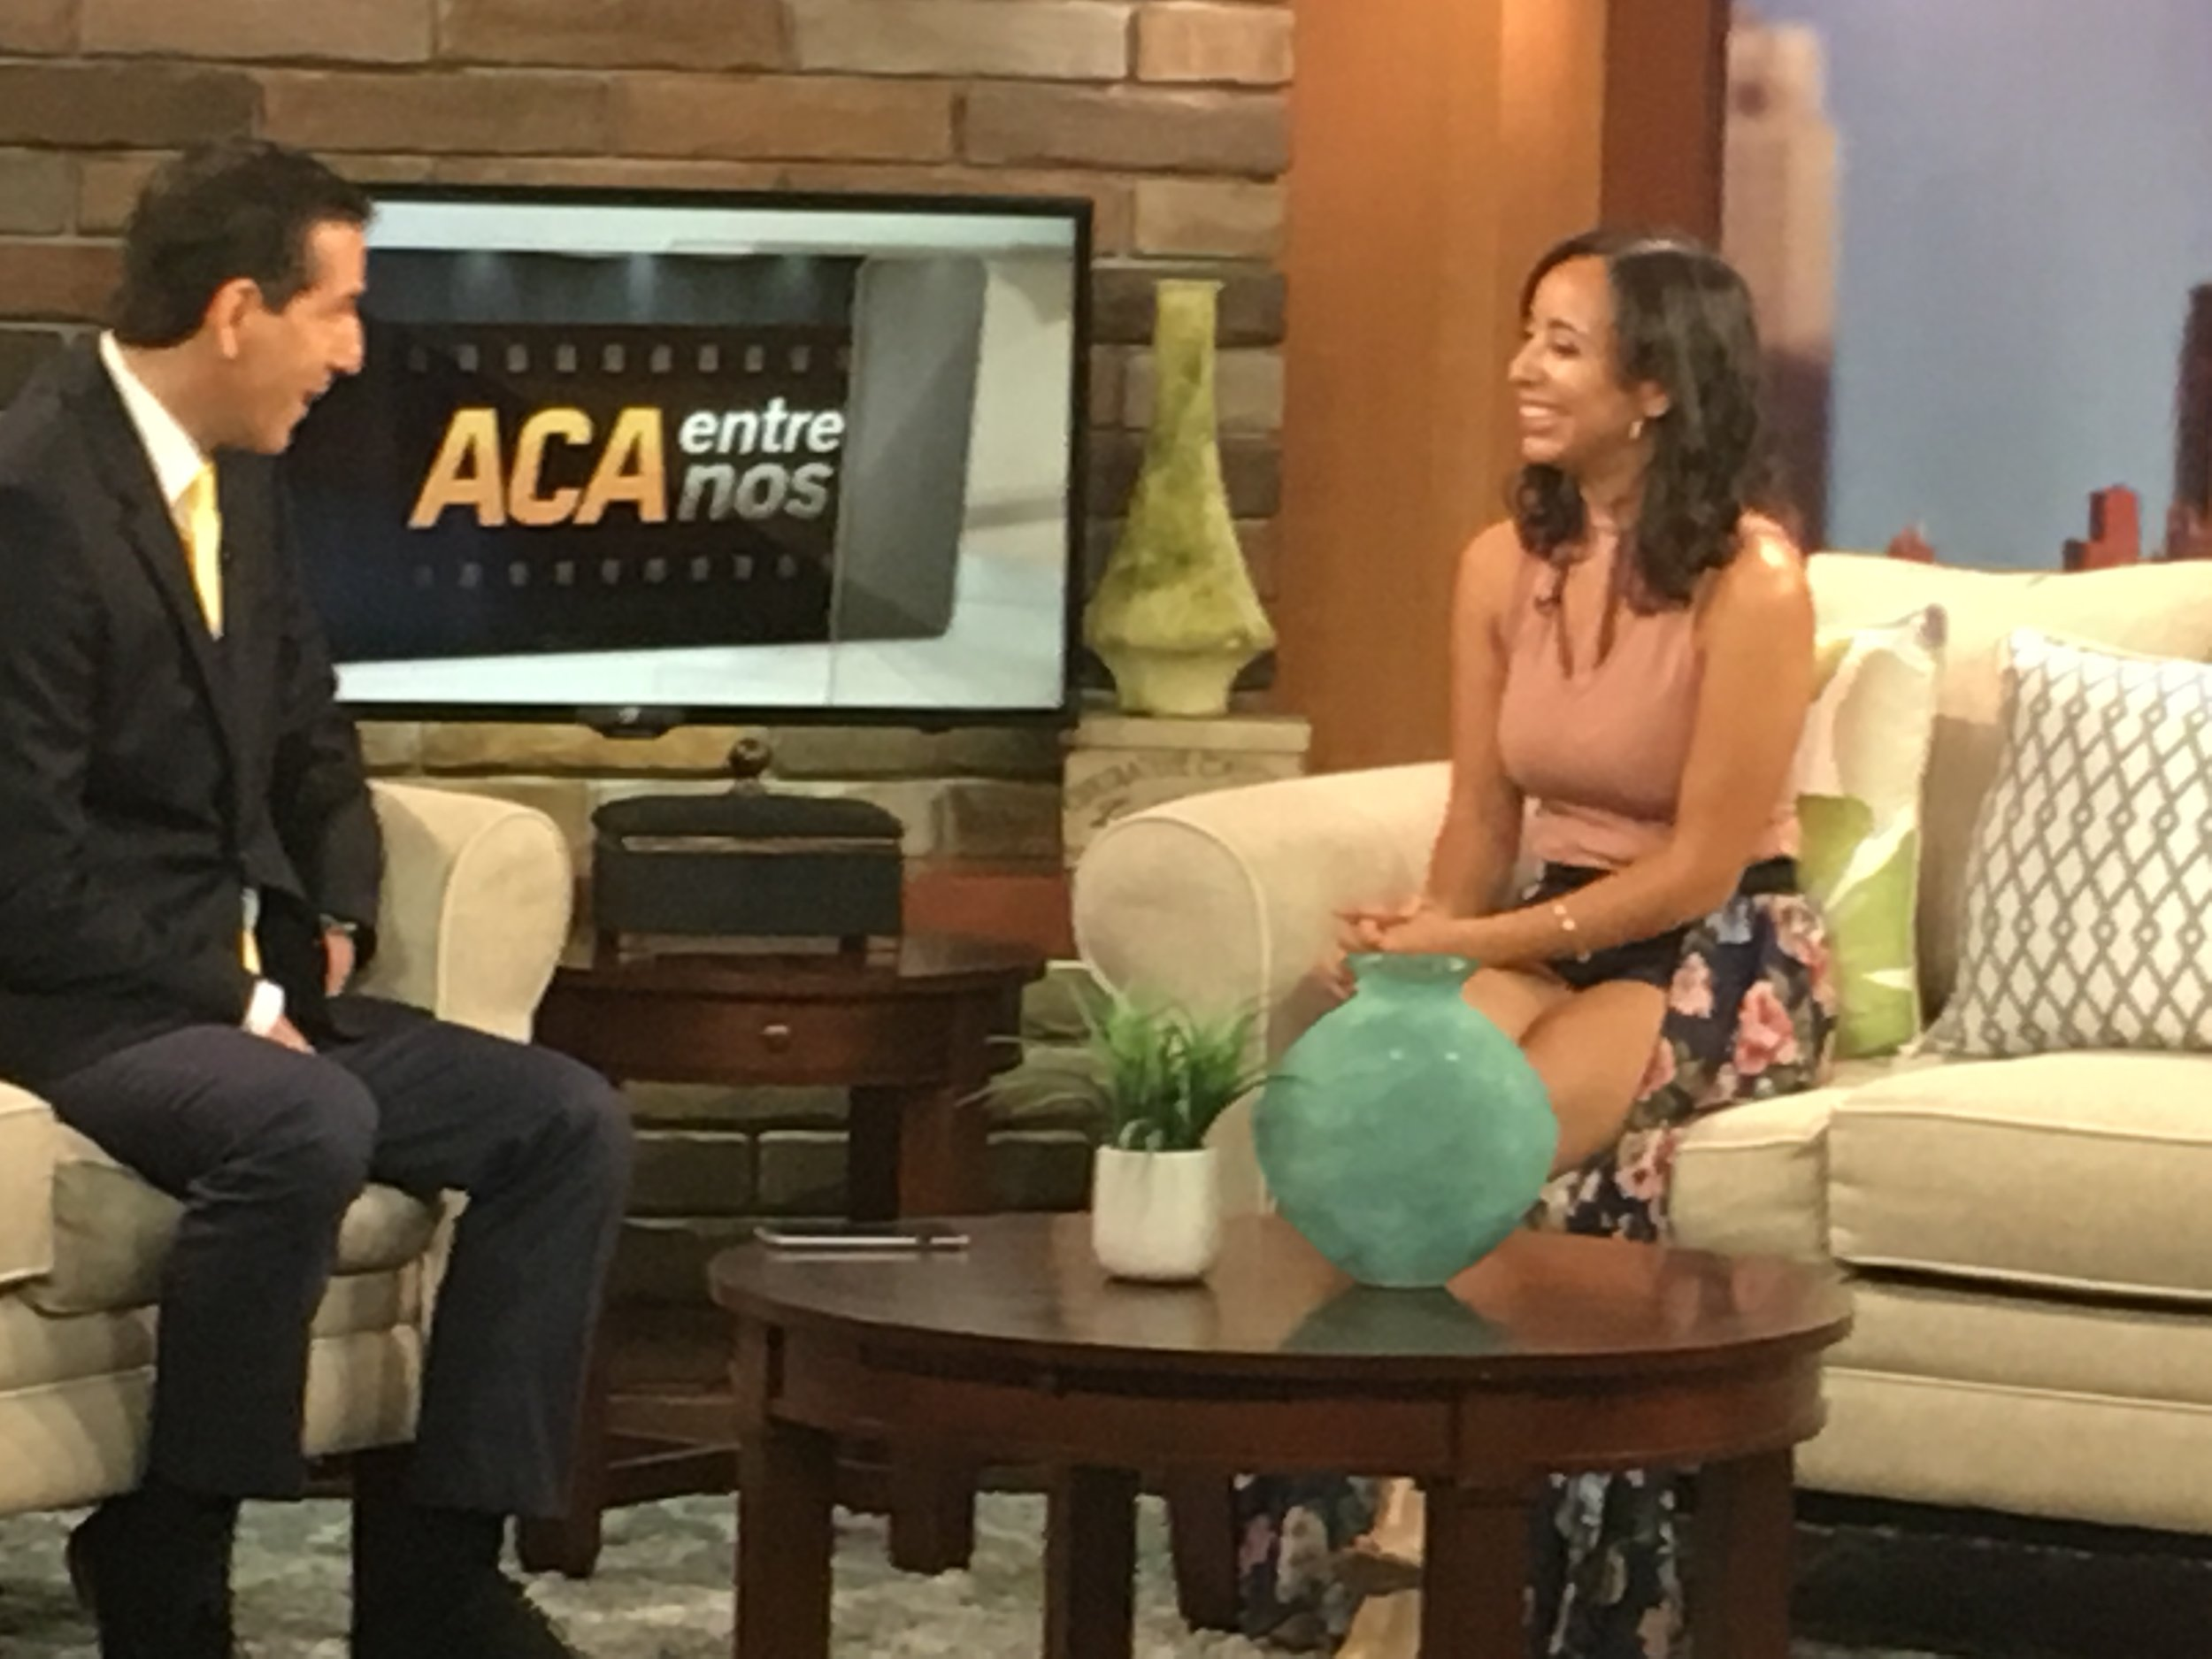 Univision - Watch Karina's interview and part of her live performance that aired on Univision's